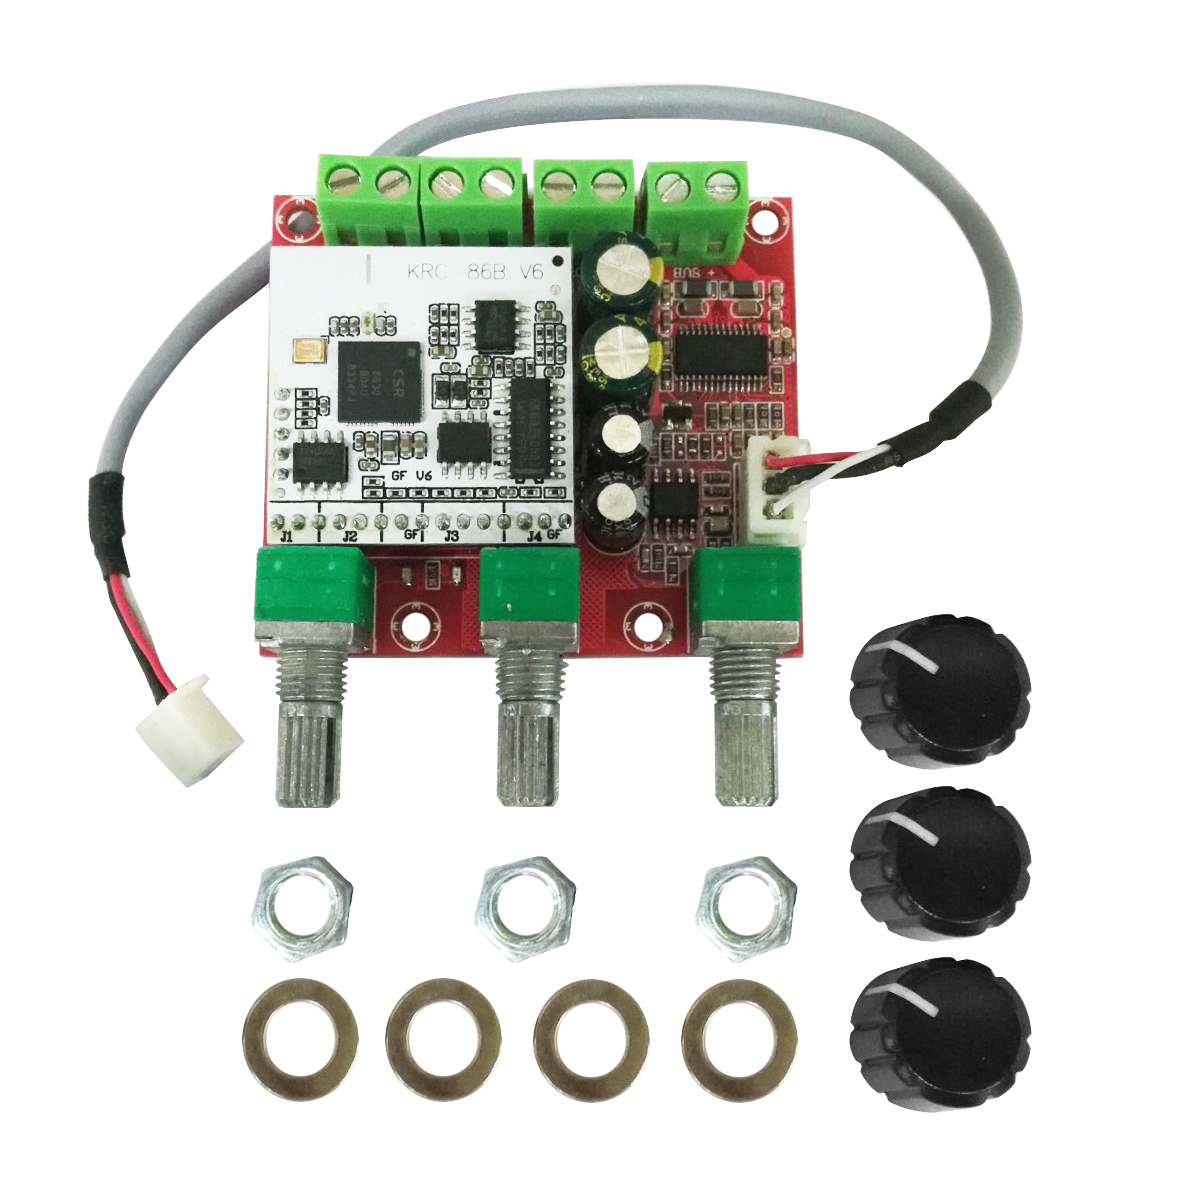 Toys are discounted 2 1 bluetooth amp board in Toy World